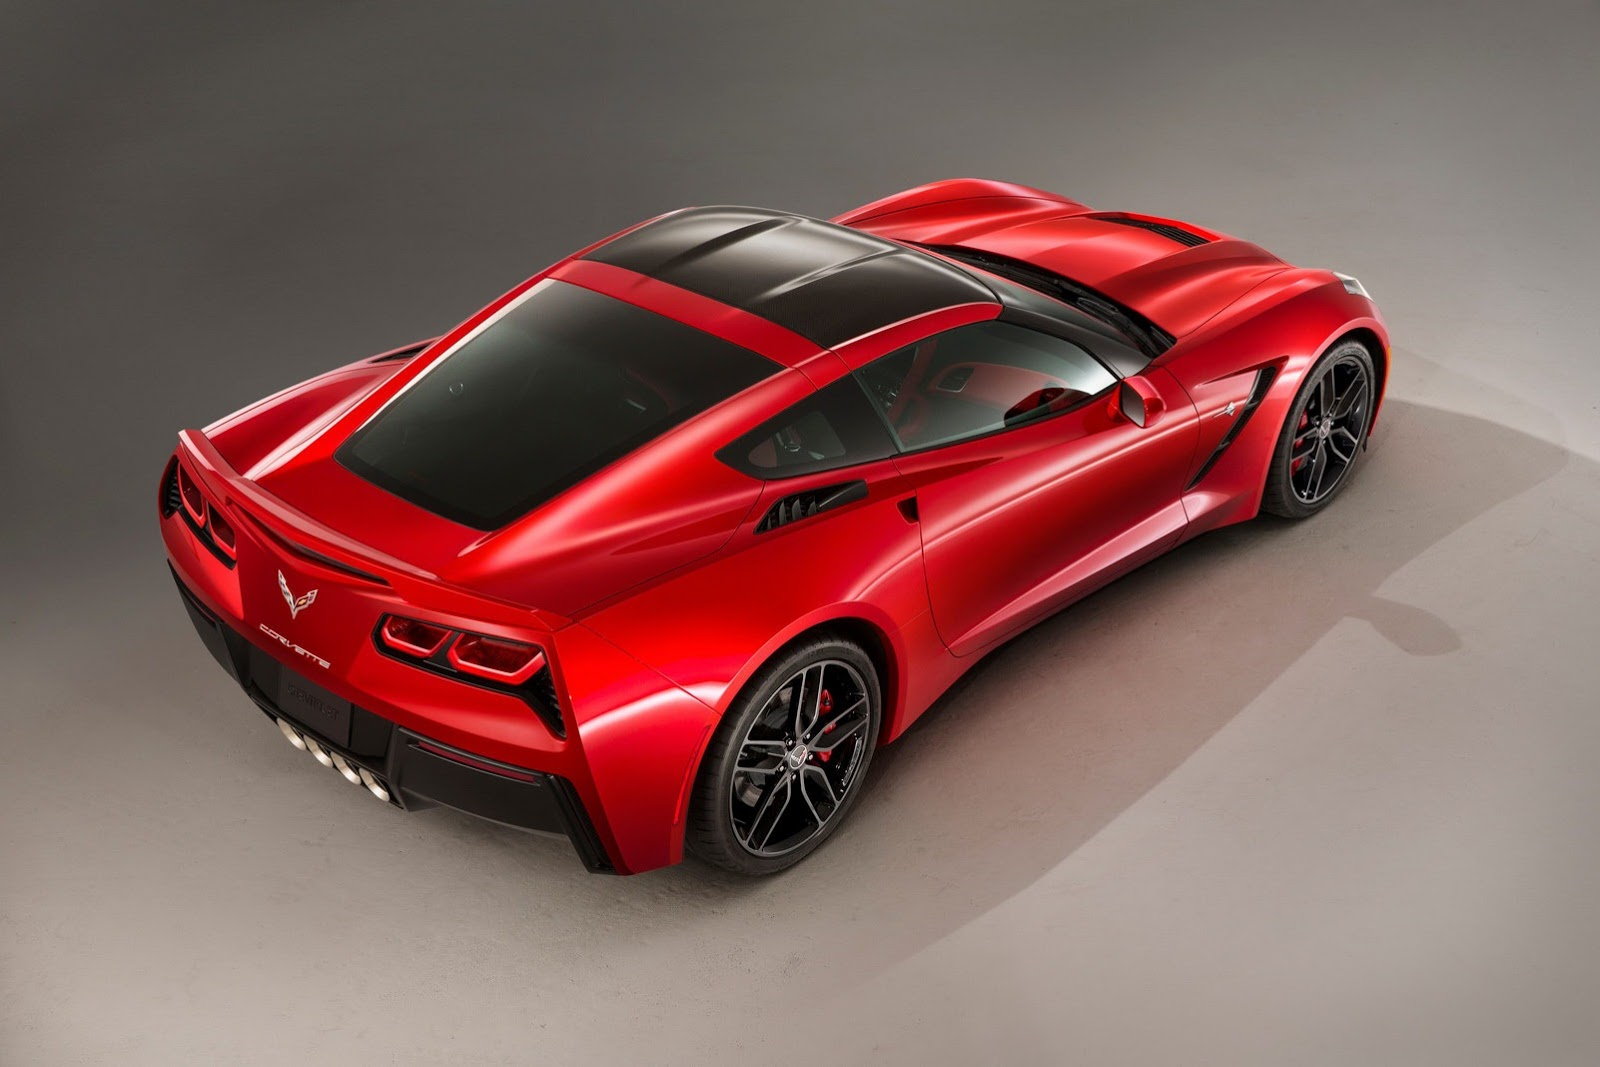 2014 corvette Stingray Wallpaper 18